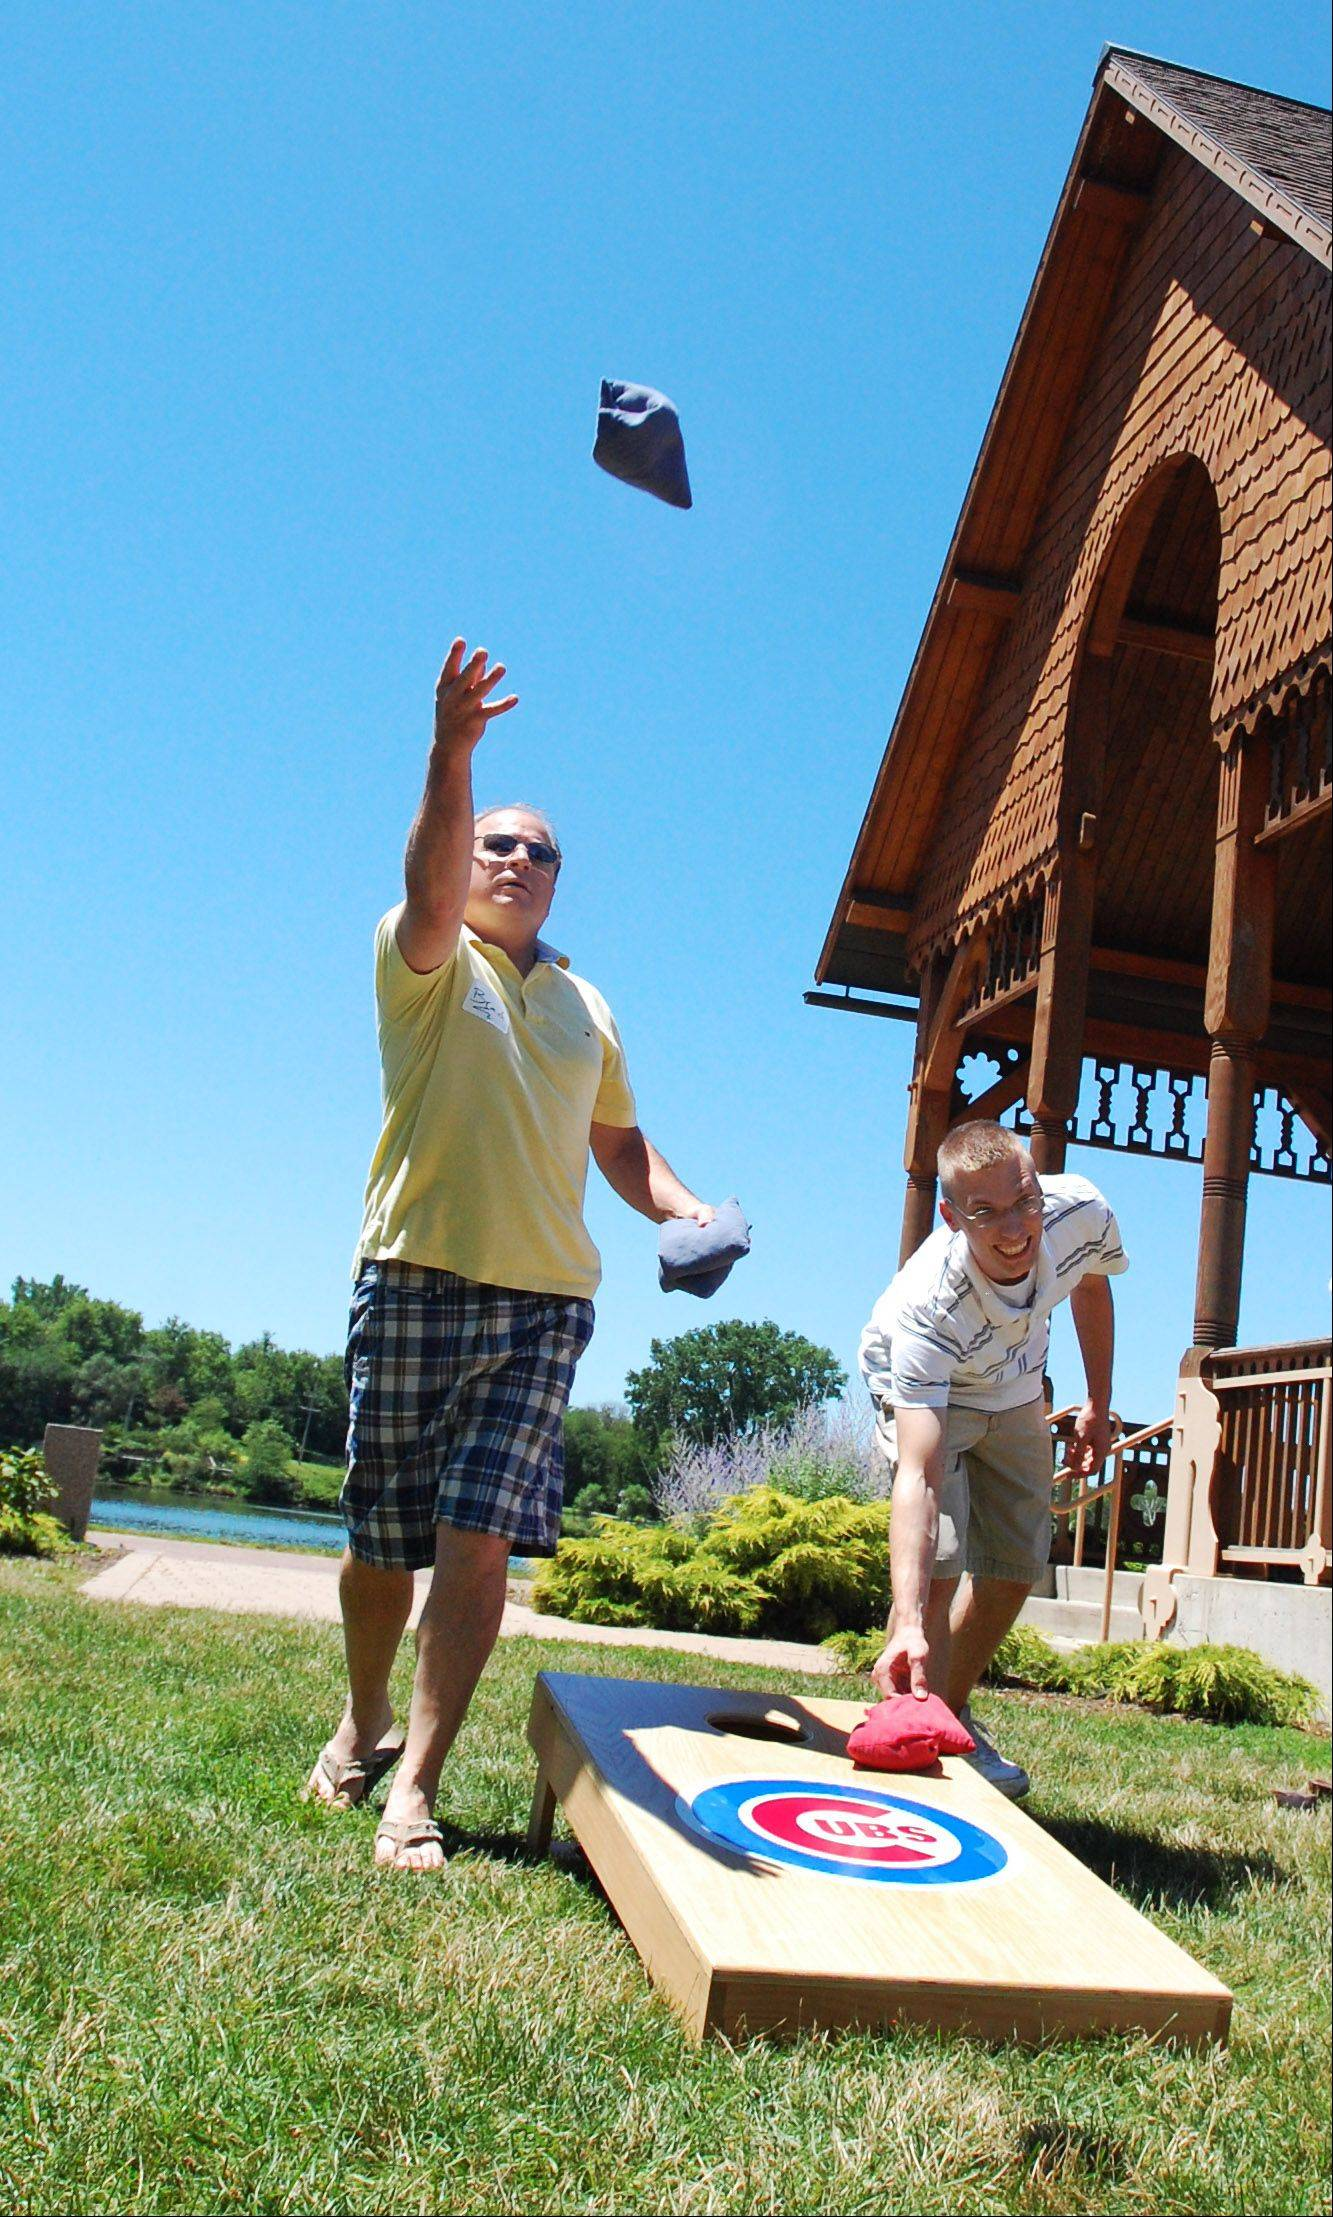 Brad McFall, left, of St. Charles, and Tom Kingsley, of Carol Stream, enjoy the beautiful weather and a game of bags at Pottawatomie Park on Friday. Aldi hosted a picnic for their employees, complete with music, games and catering from the Slow-Food Bar-B-Que truck.